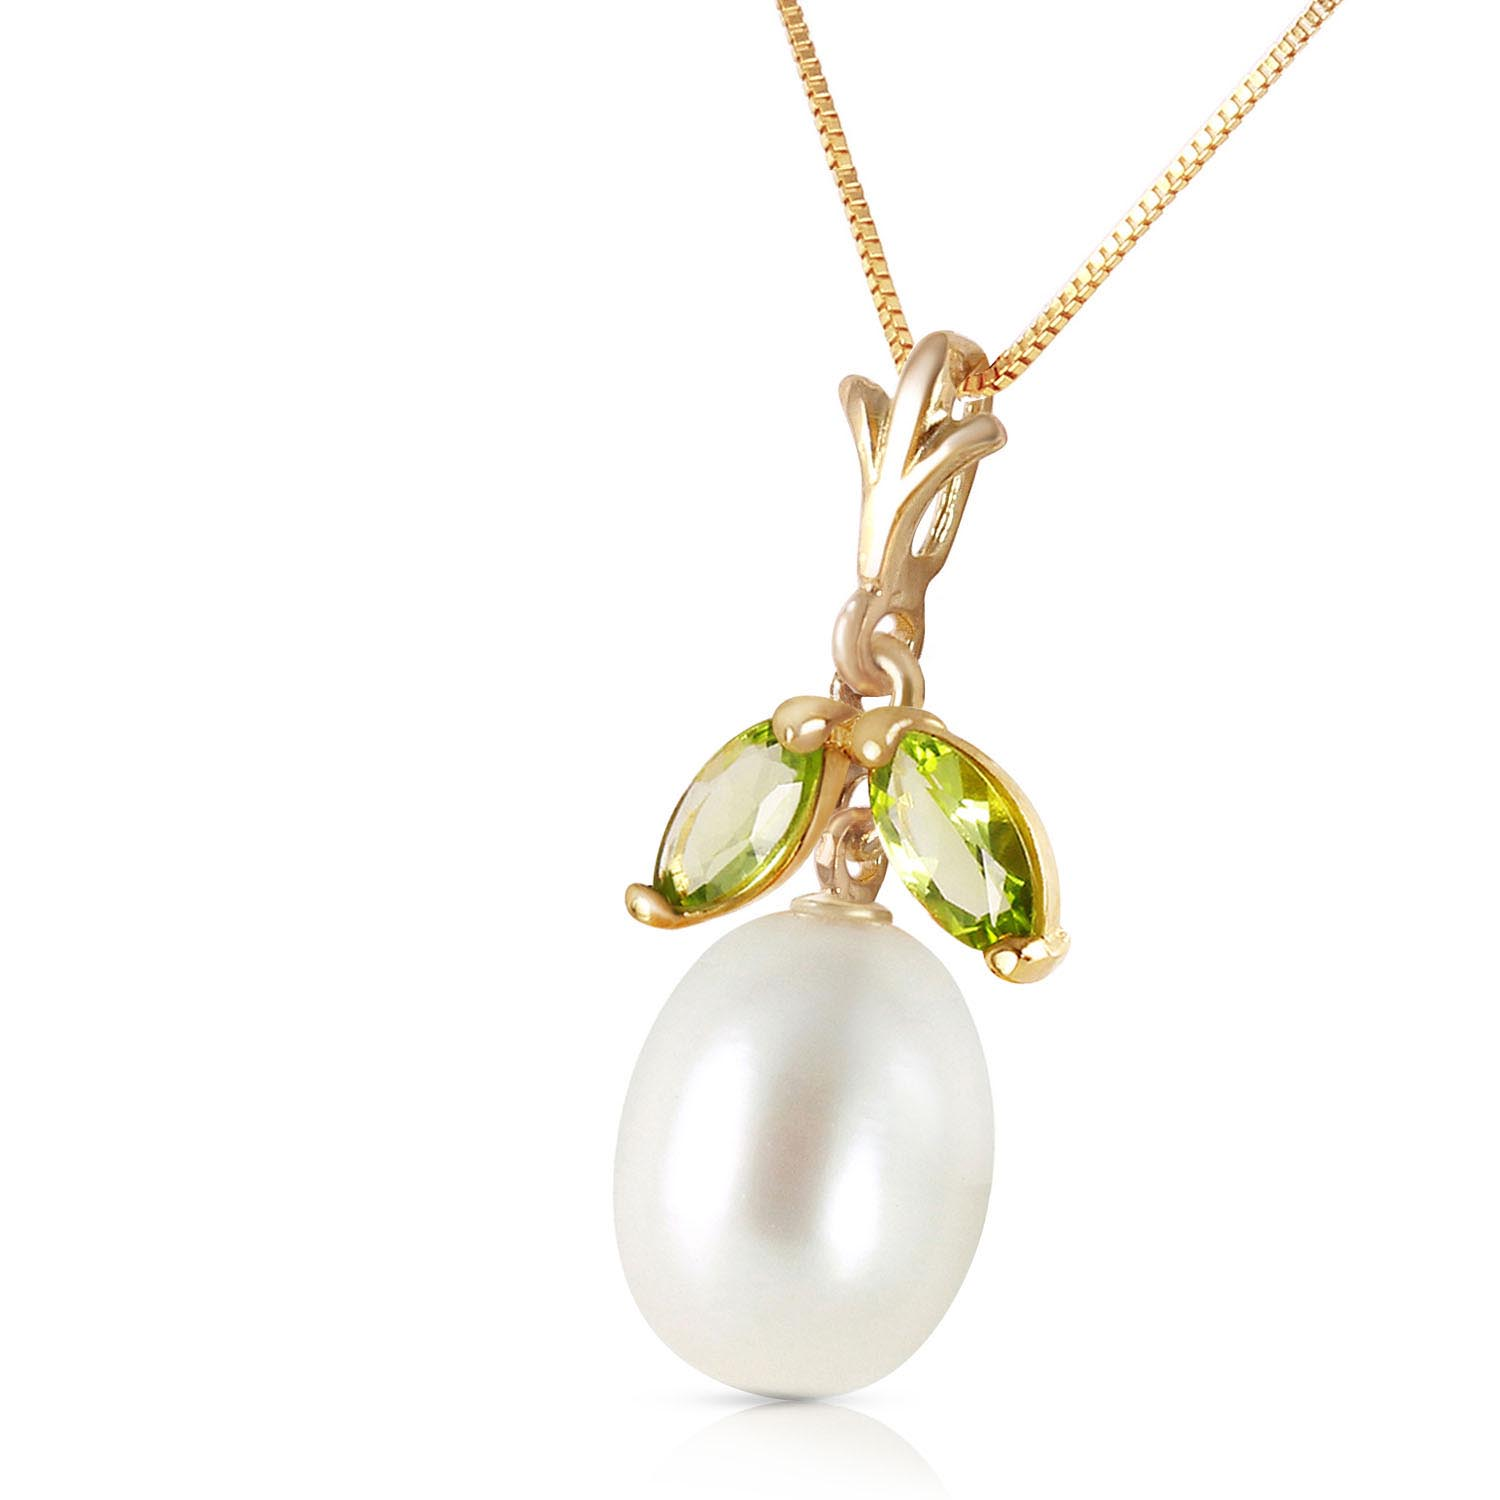 Pearl and Peridot Pendant Necklace 4.5ctw in 9ct Gold